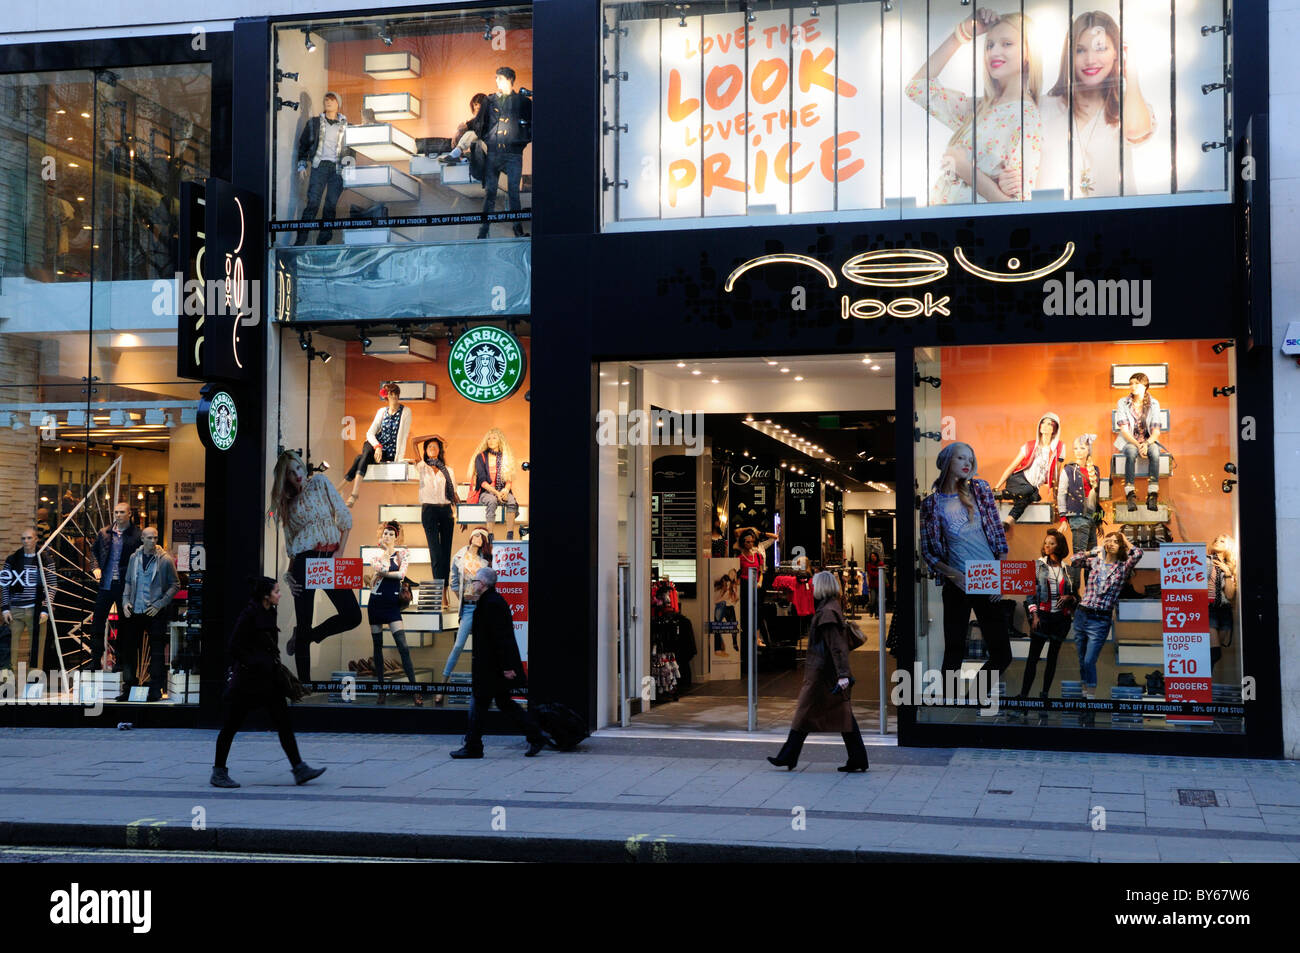 New Look Fashion Clothes Shop, Oxford Street, London, England, UK - Stock Image